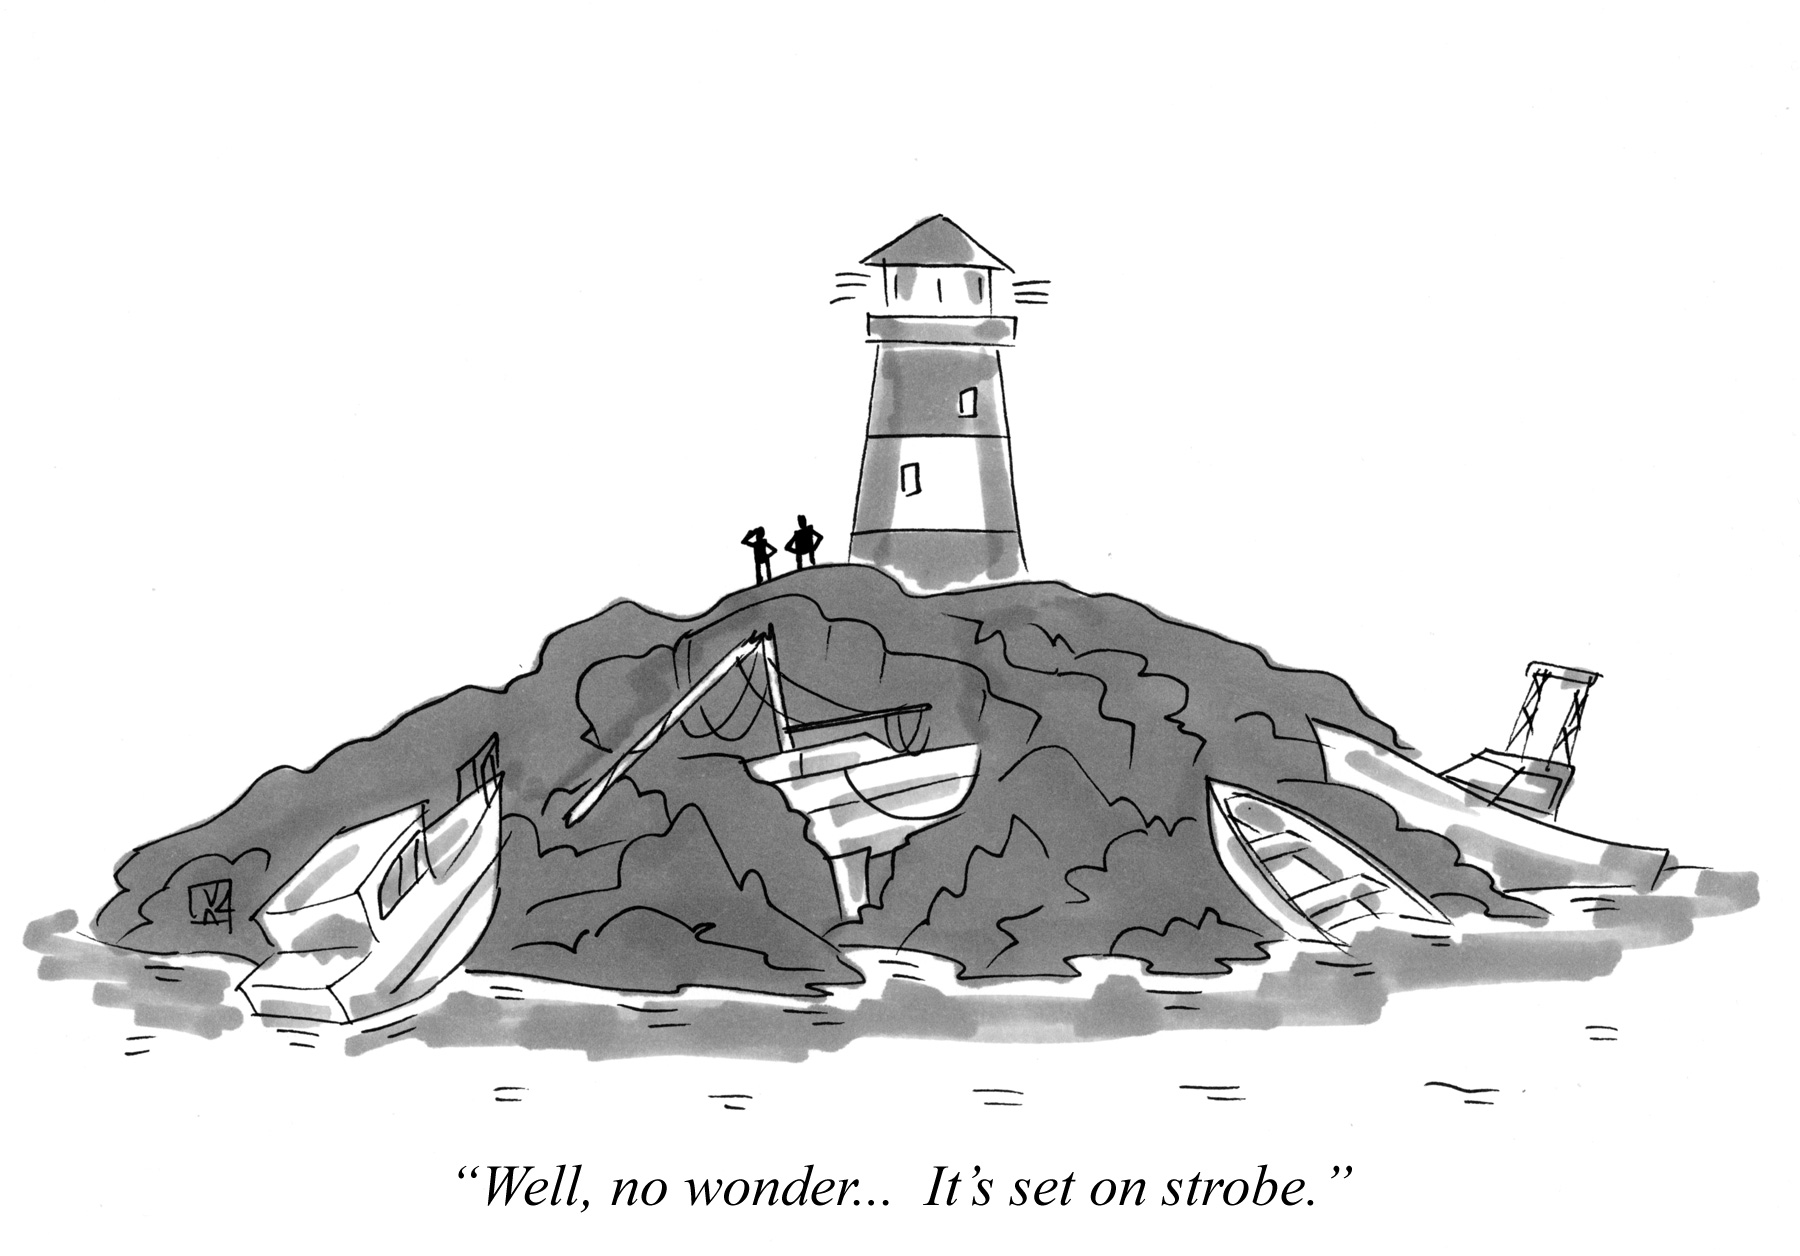 Cartoon about boats grounding because of a broken lighthouse